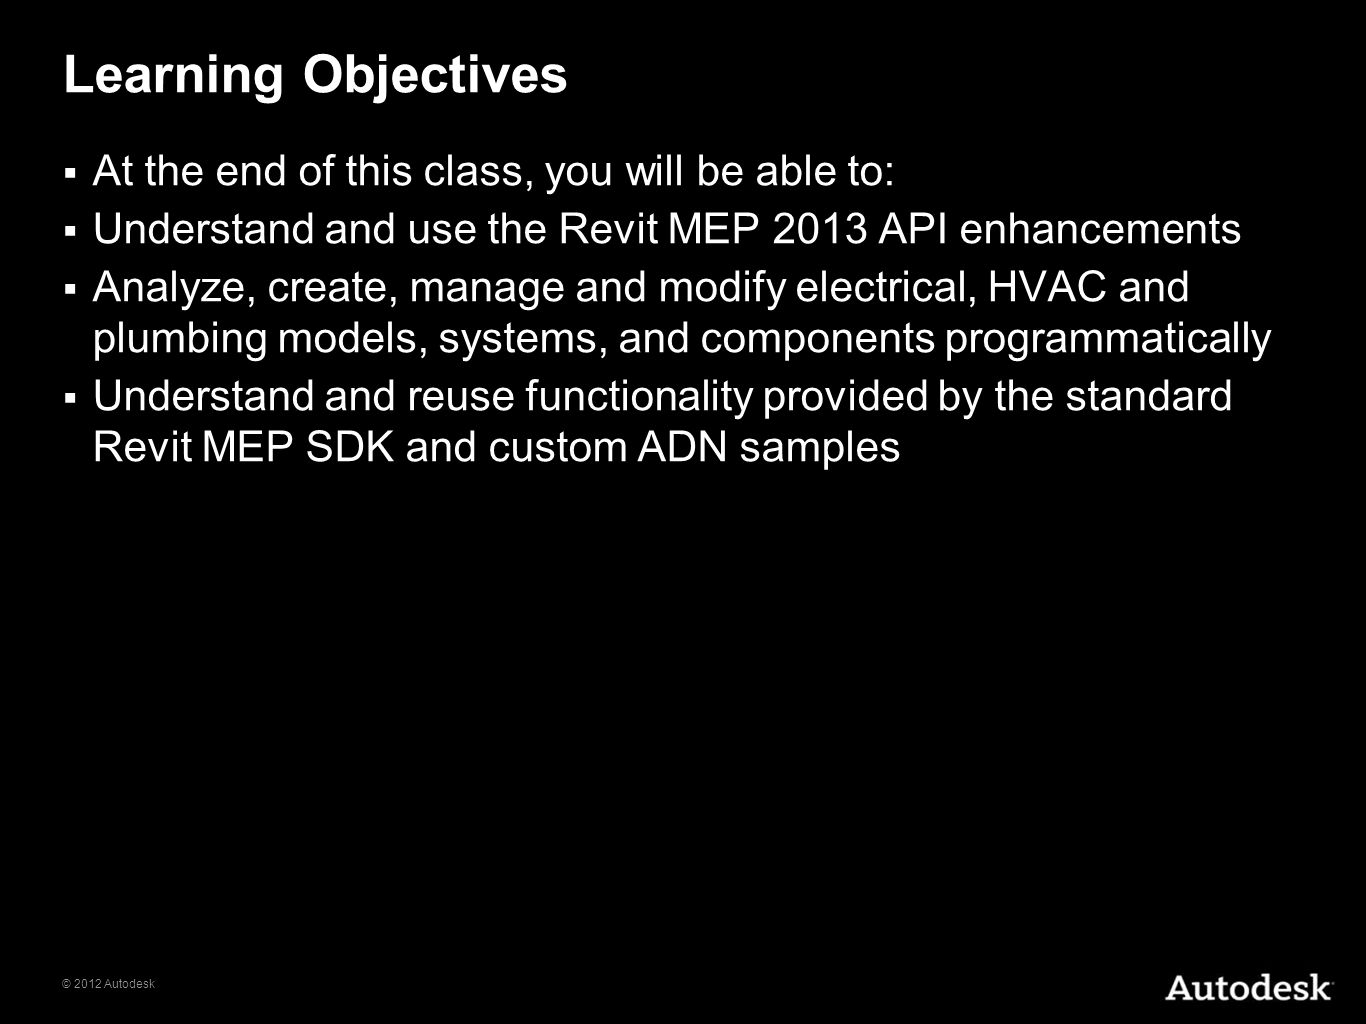 © 2012 Autodesk Learning Objectives At the end of this class, you will be able to: Understand and use the Revit MEP 2013 API enhancements Analyze, cre